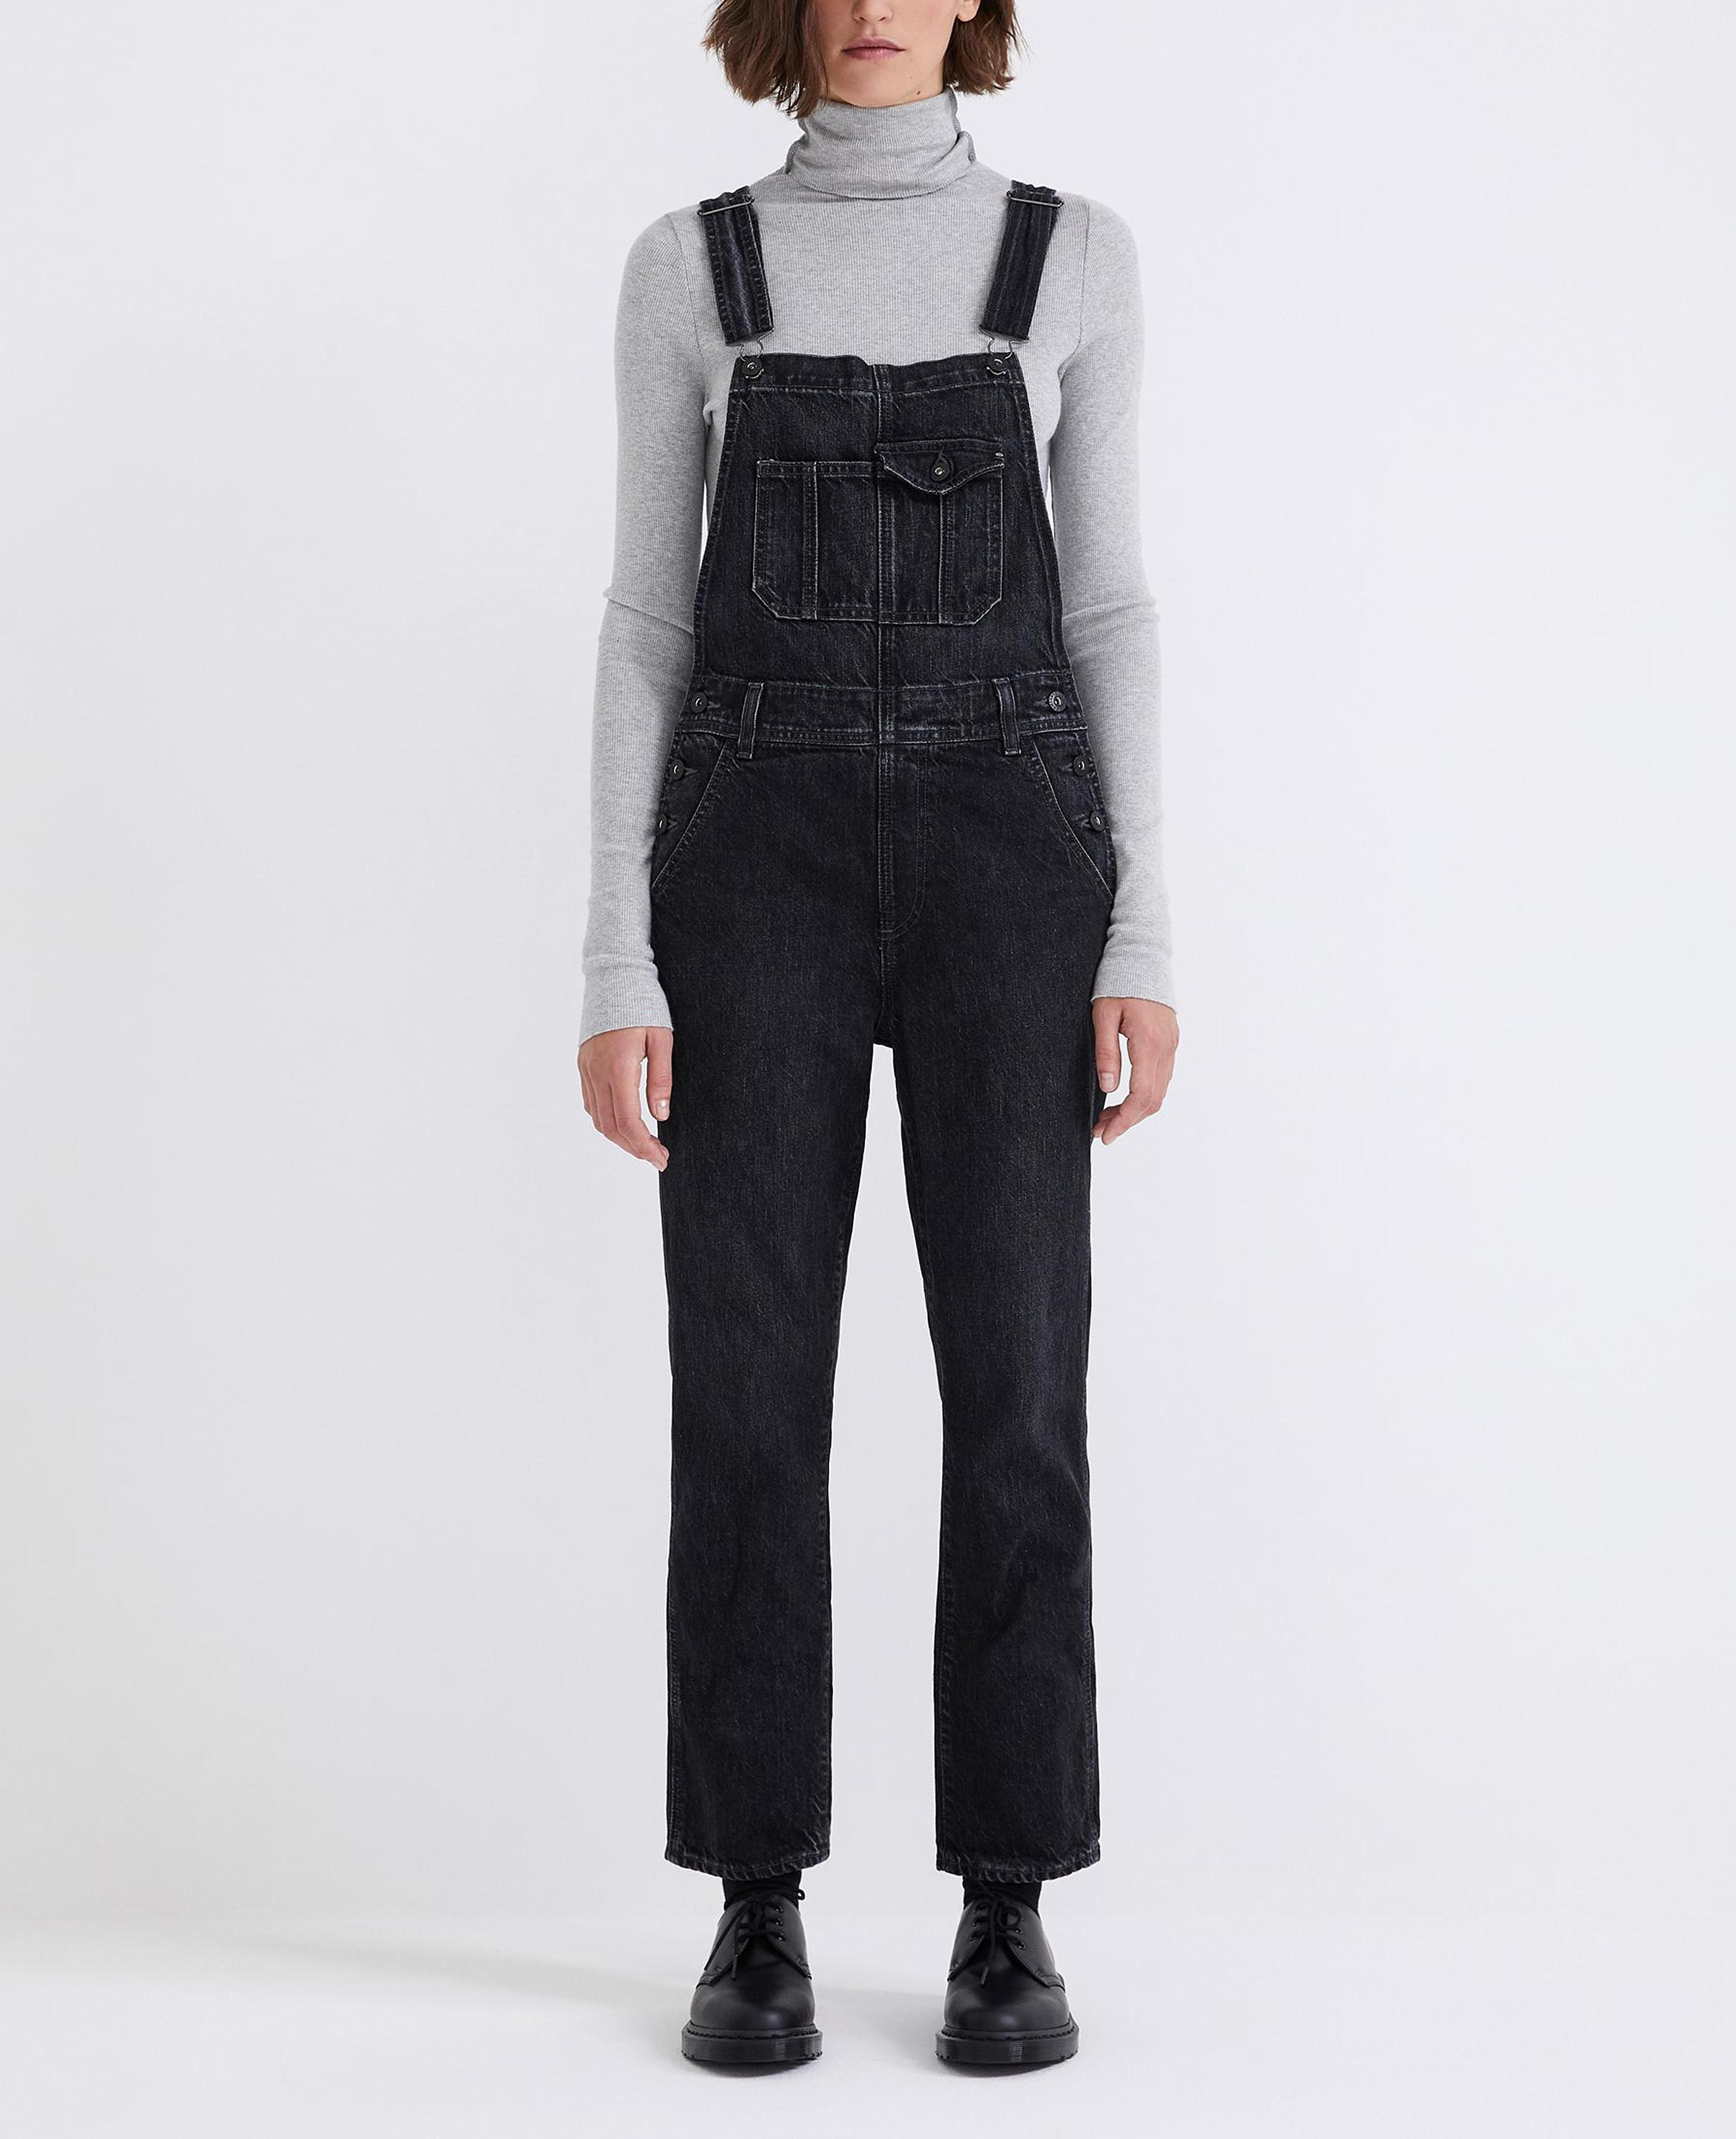 The Leah Overall